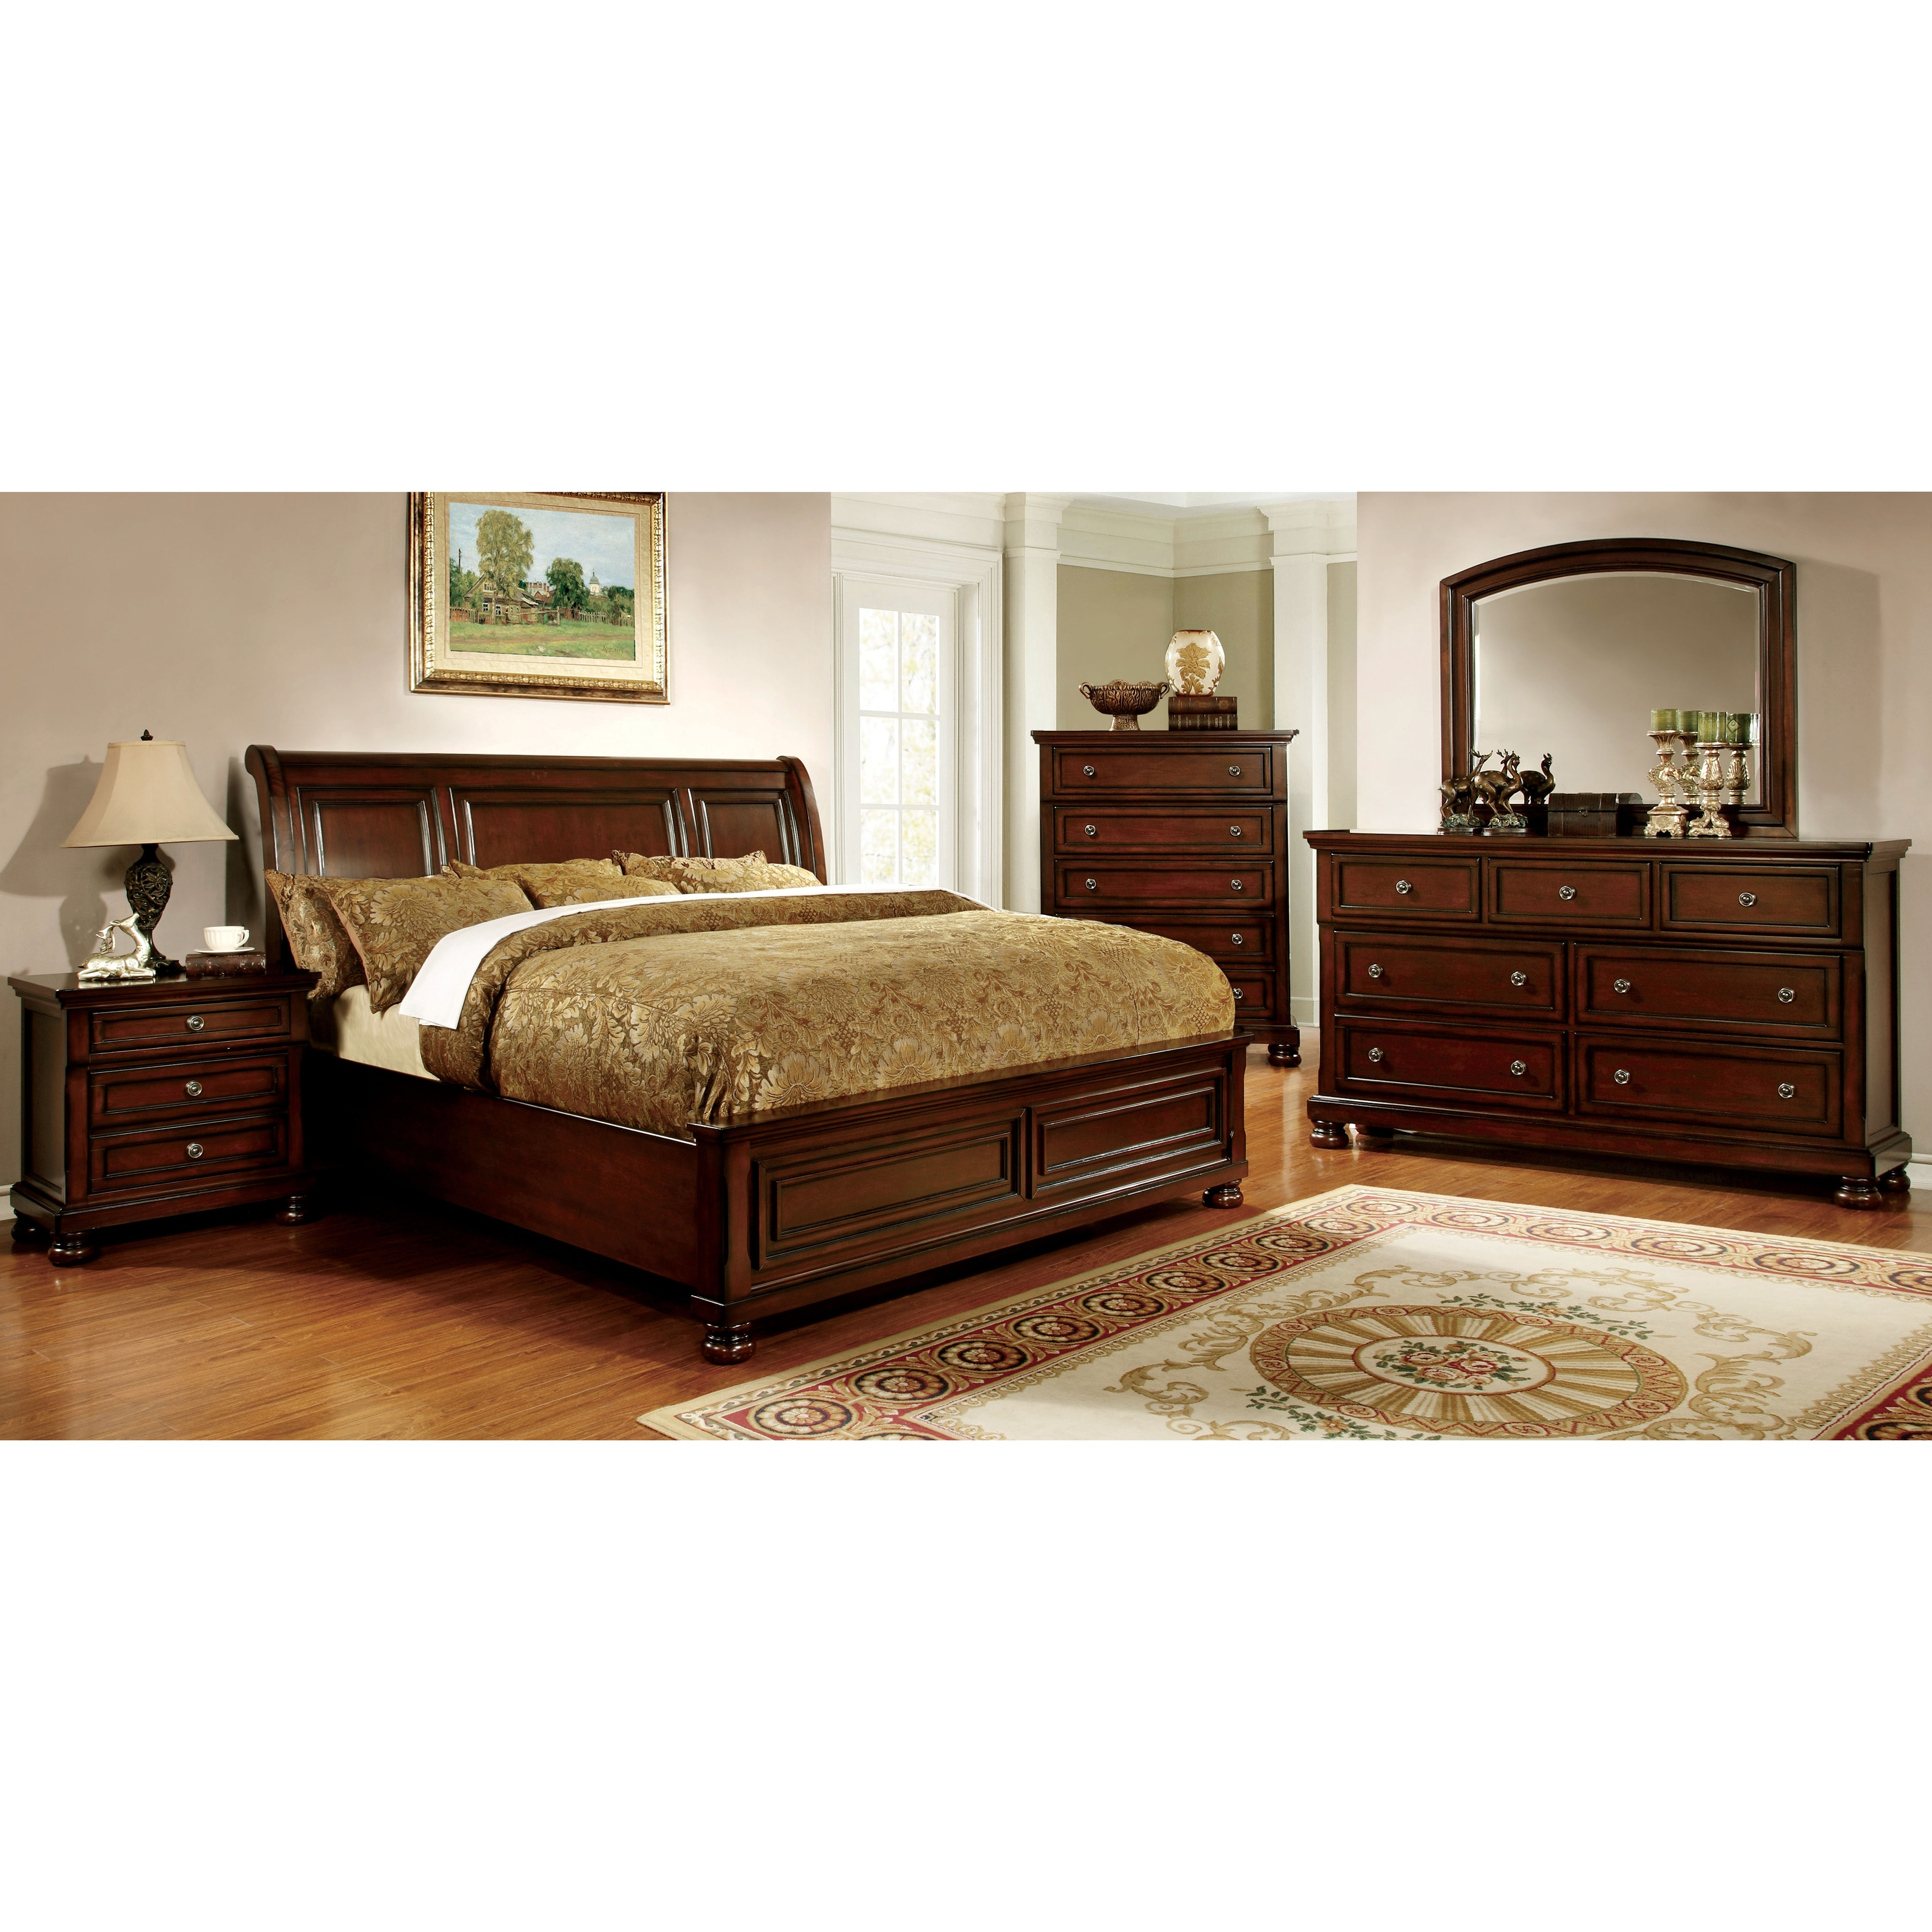 Furniture of America Barelle II Cherry 4 piece Bedroom Set Free